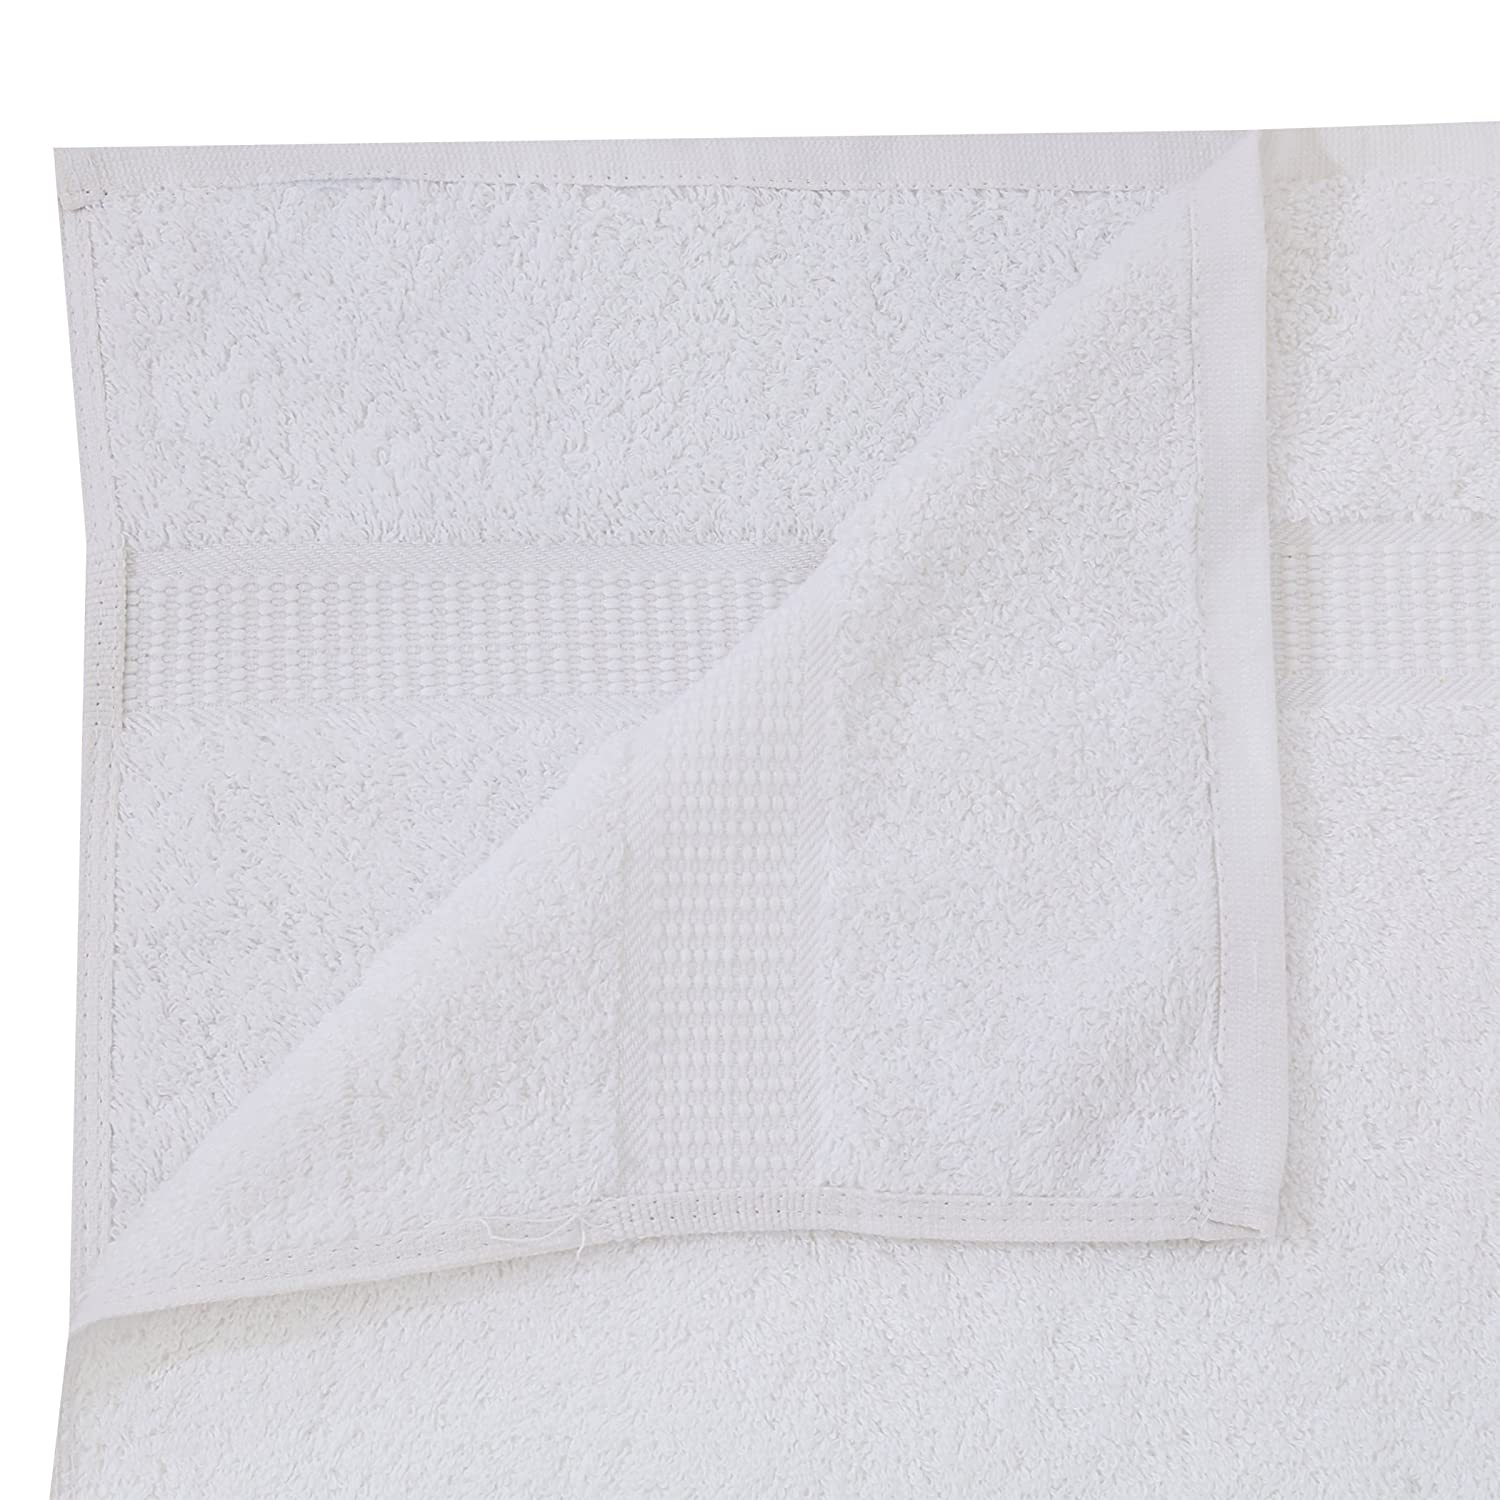 -Highly Absorbent Multipurpose Use for Bath Grey GOLD TEXTILES Cotton Large Hand Towels 16x30 4-Pack,Grey,16x30 Face -Highly Absorbent Multipurpose Use for Bath Gym and Spa Hand